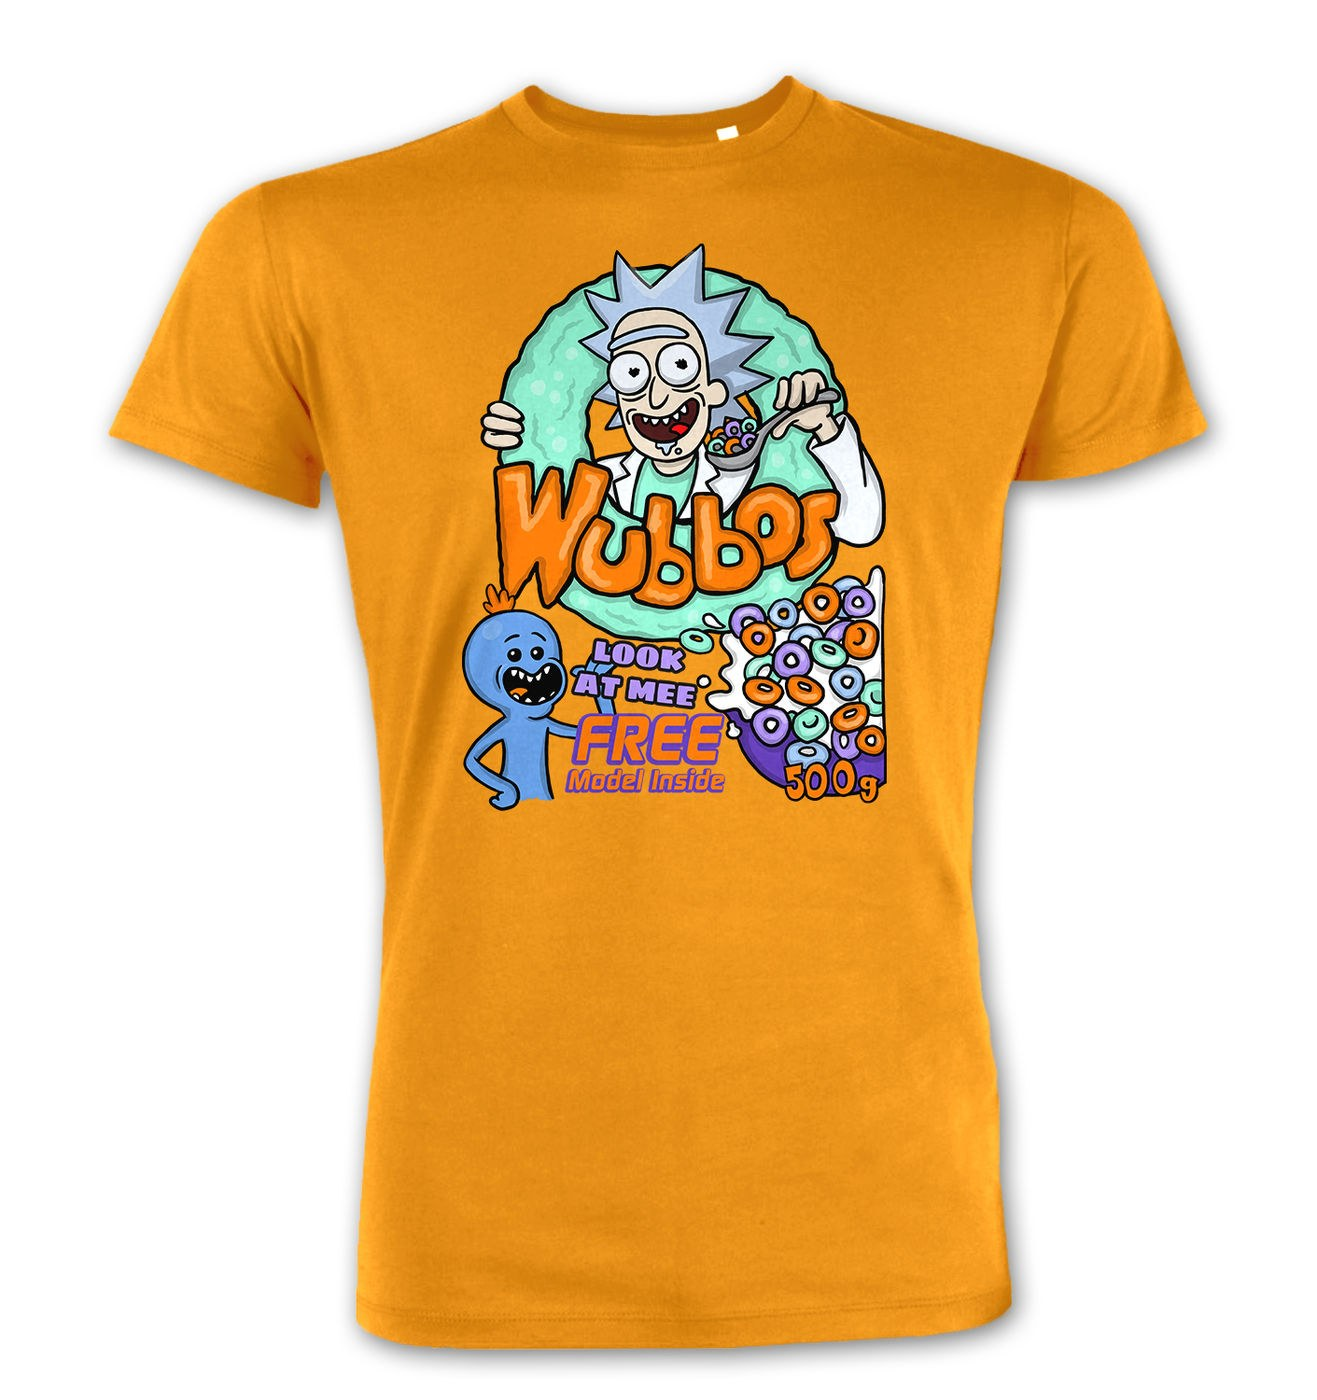 Wubbos Cereal premium t-shirt by Something Geeky